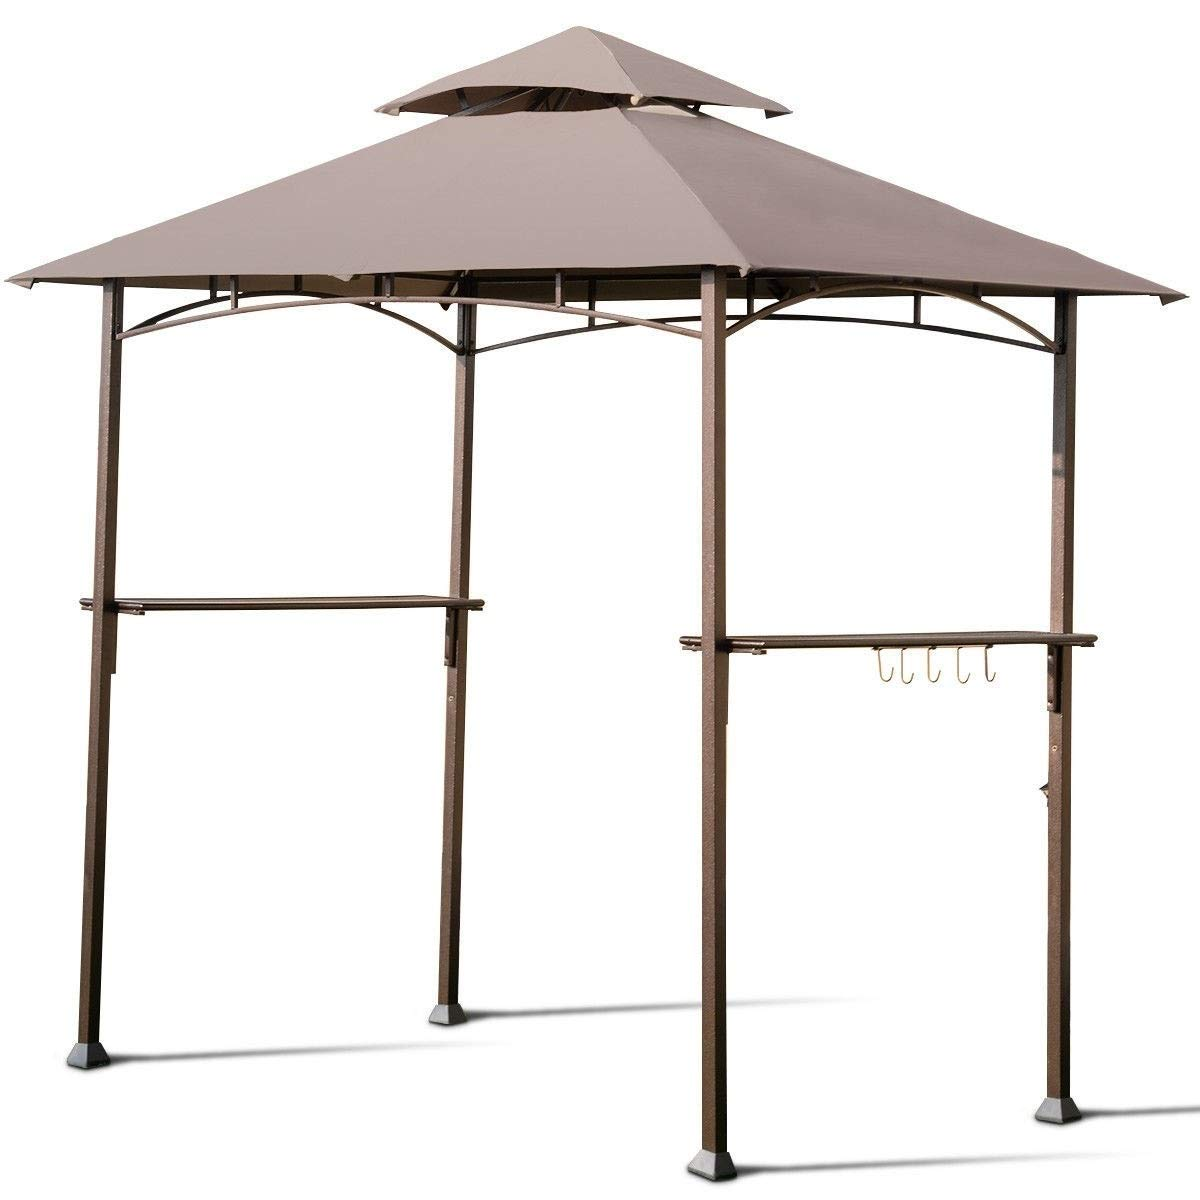 BESTChoiceForYou 8' x 5' Outdoor Barbecue Grill Gazebo Canopy Tent BBQ Shelter